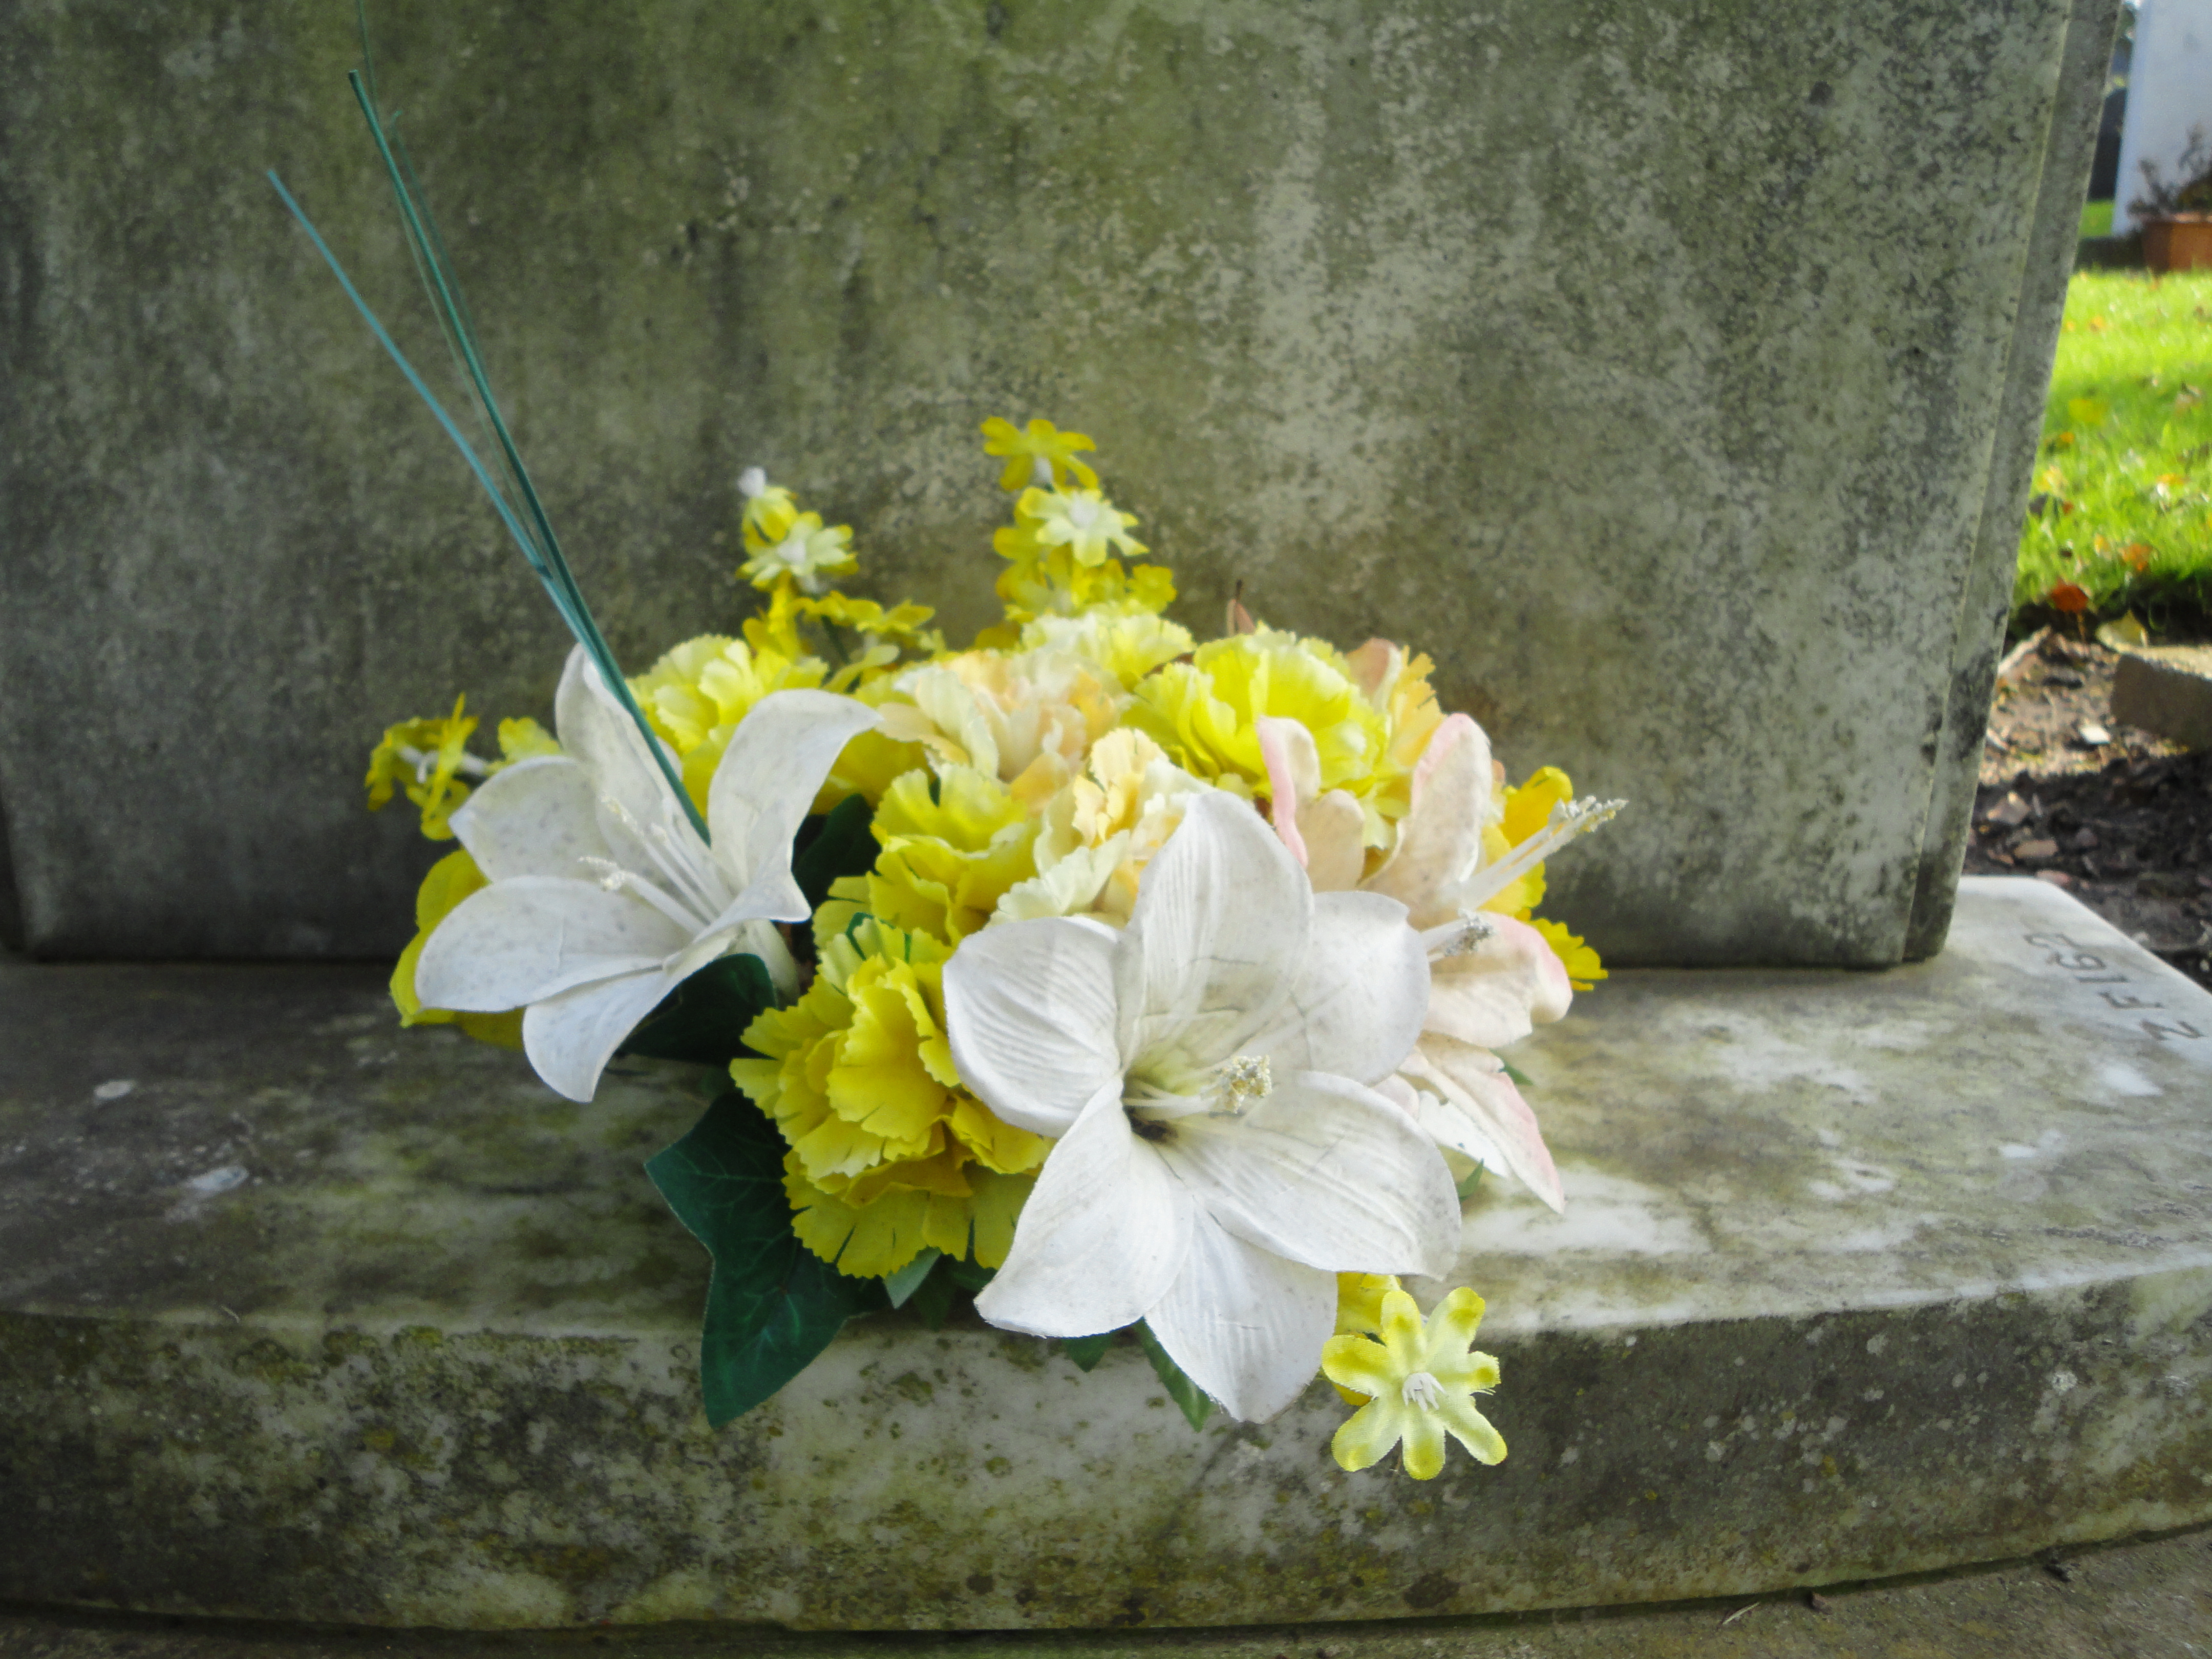 Flower at grave photo